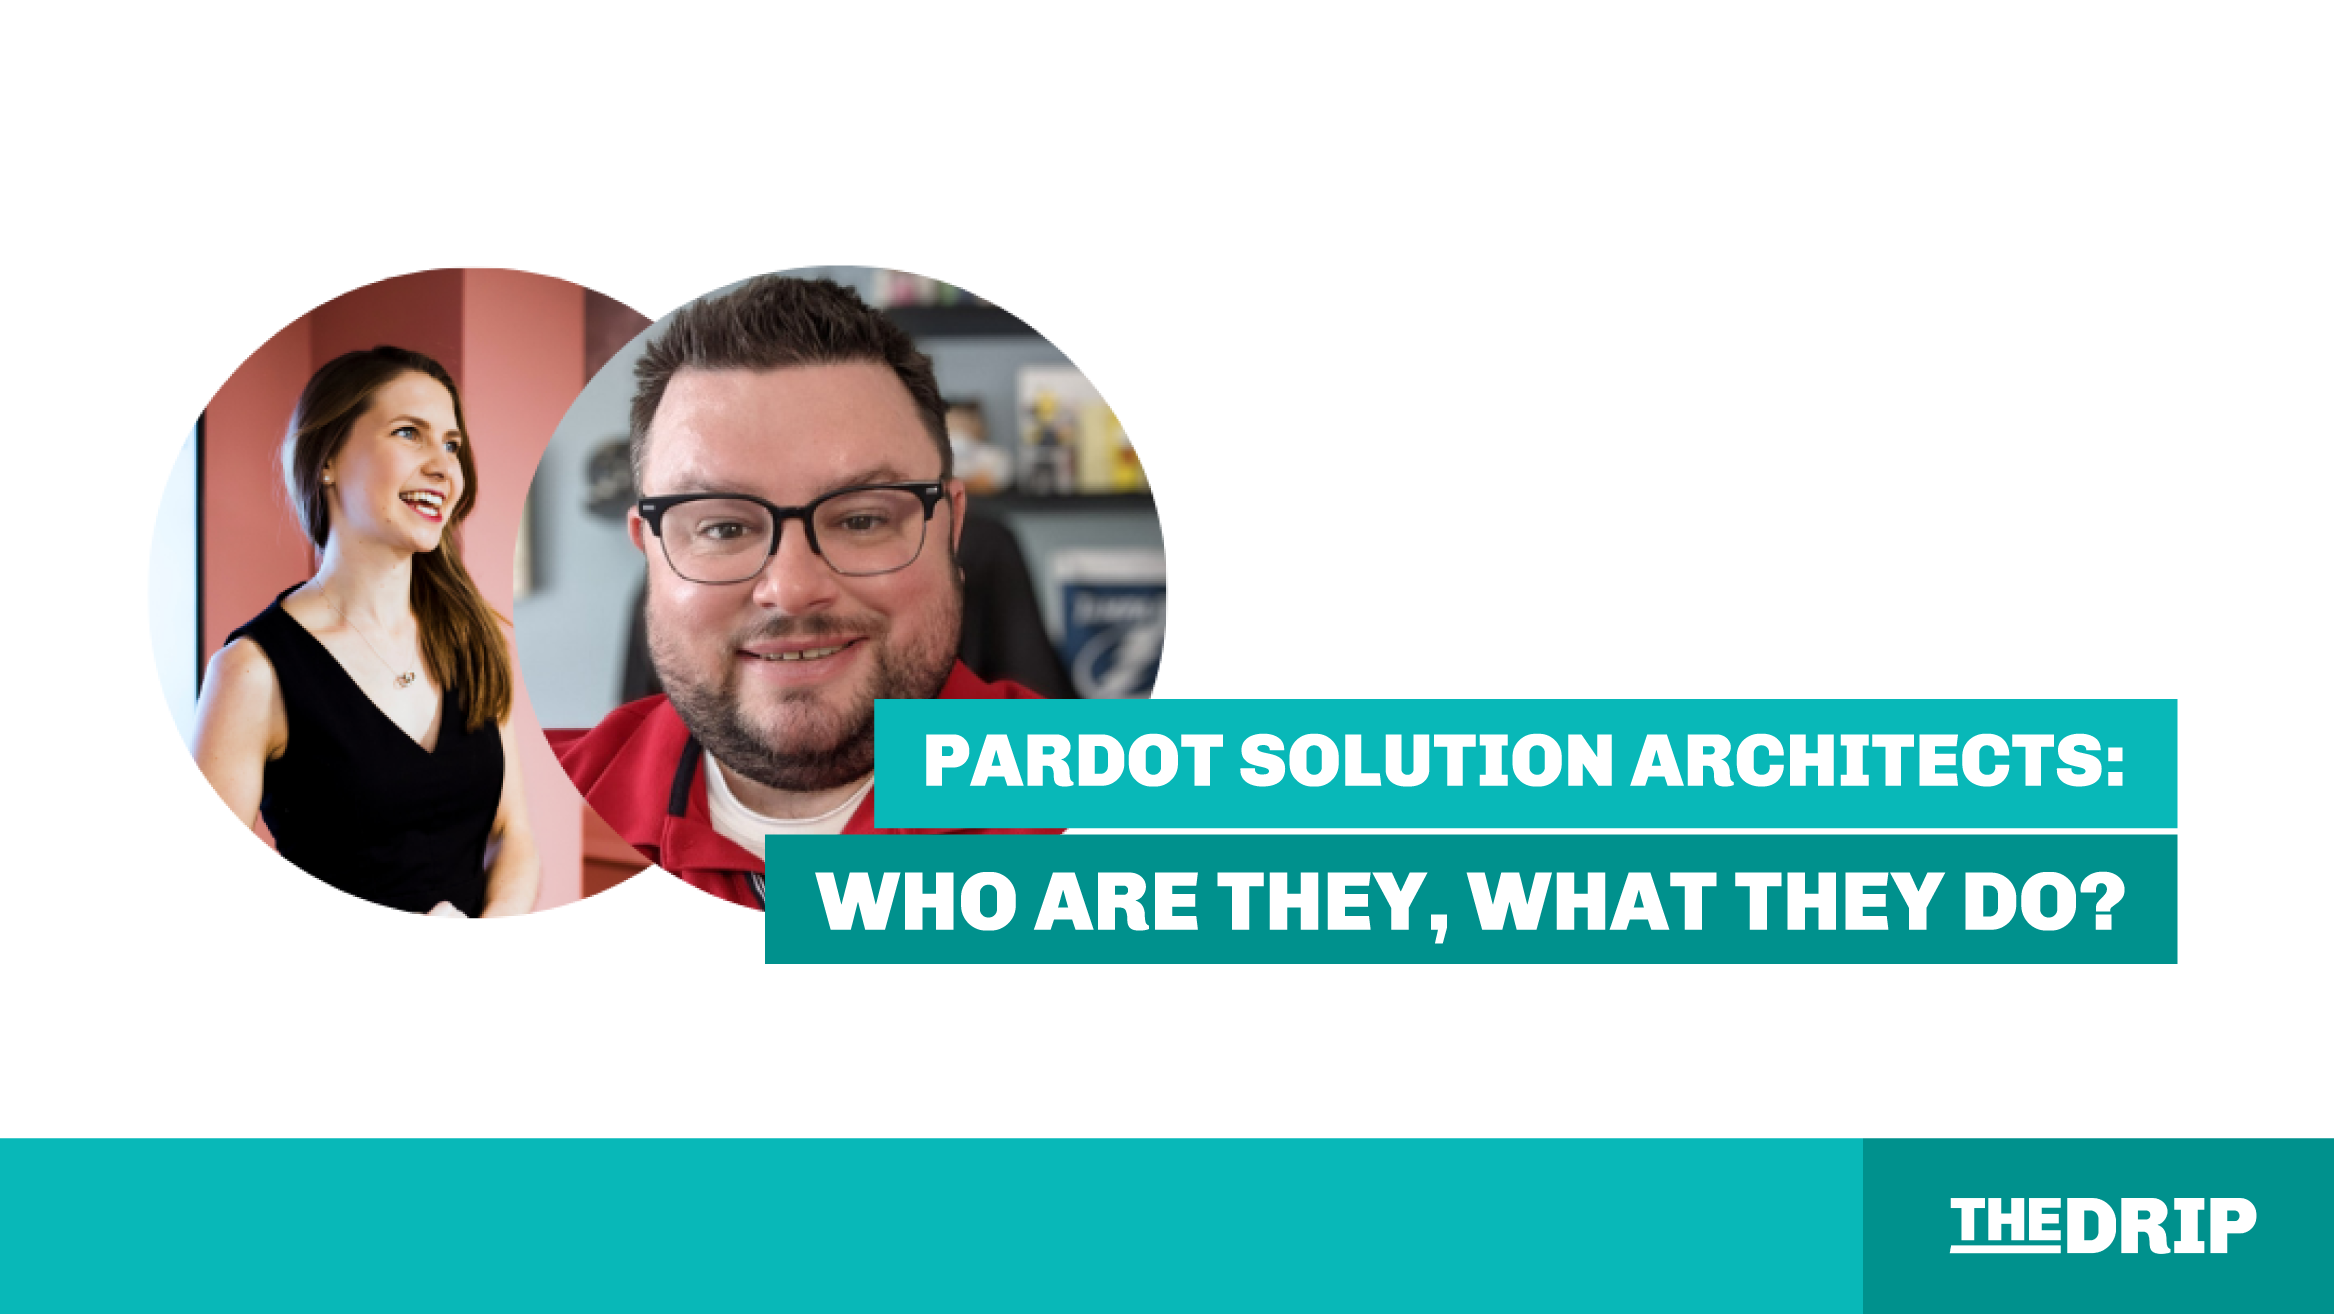 Pardot Solution Architects – Who are they, what do they do?